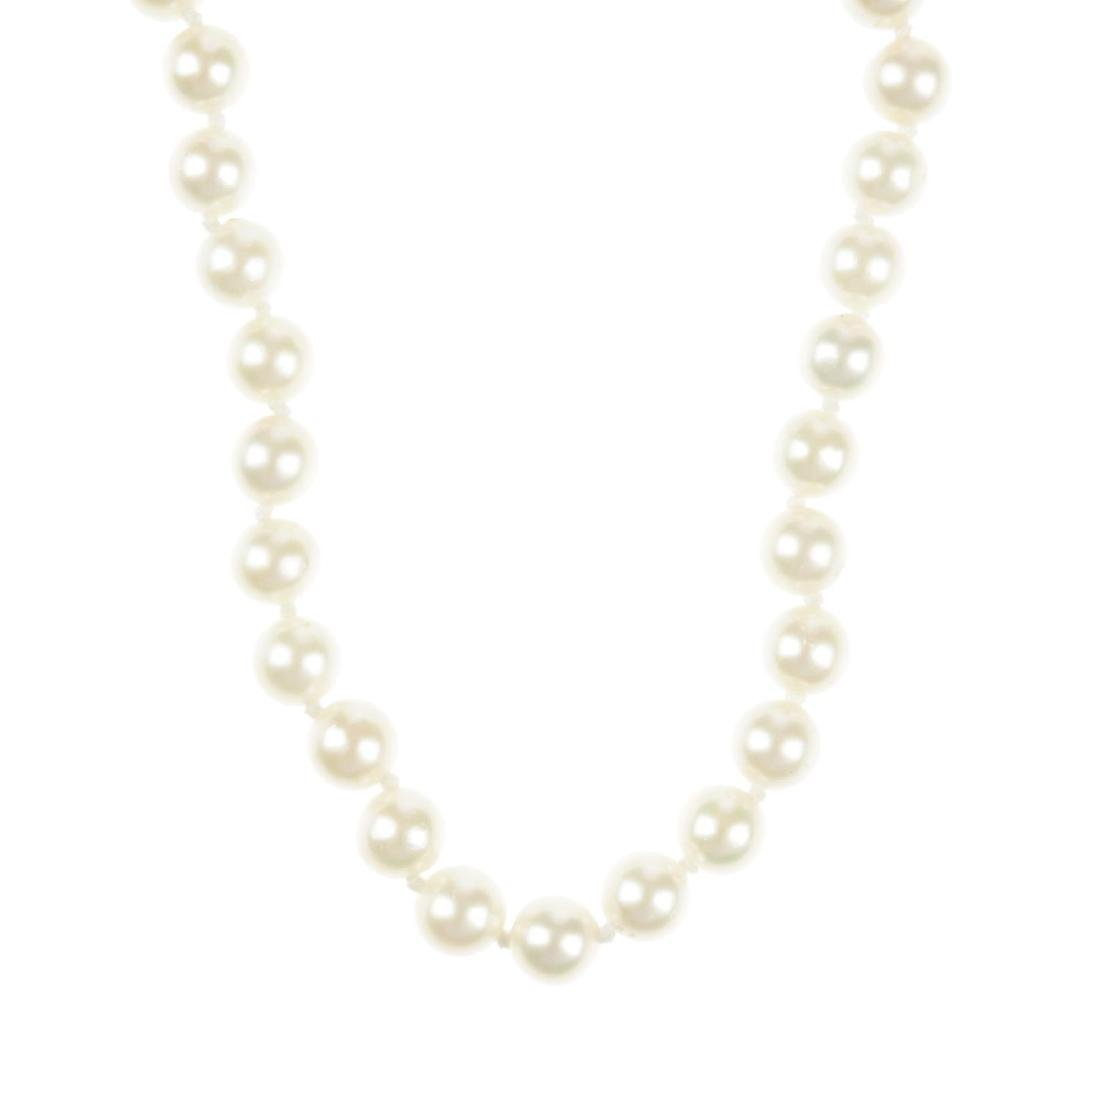 A cultured pearl necklace. Comprising a single row of